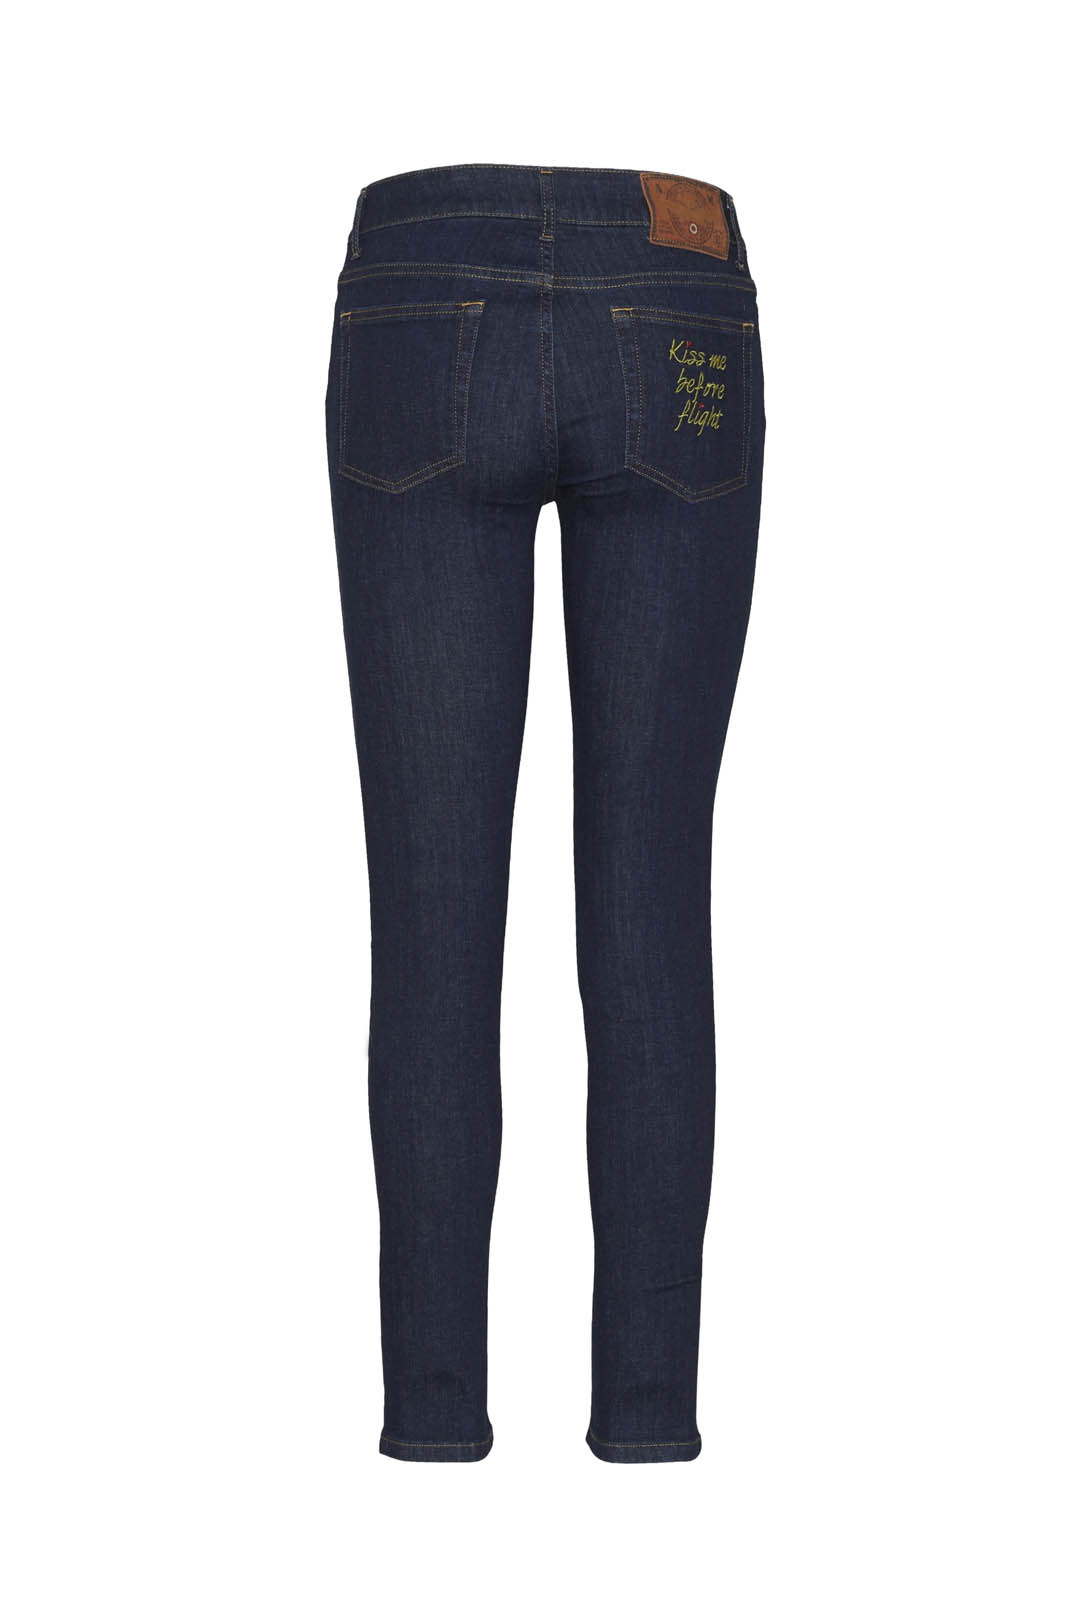 Jean 5 poches coupe slim fit             2